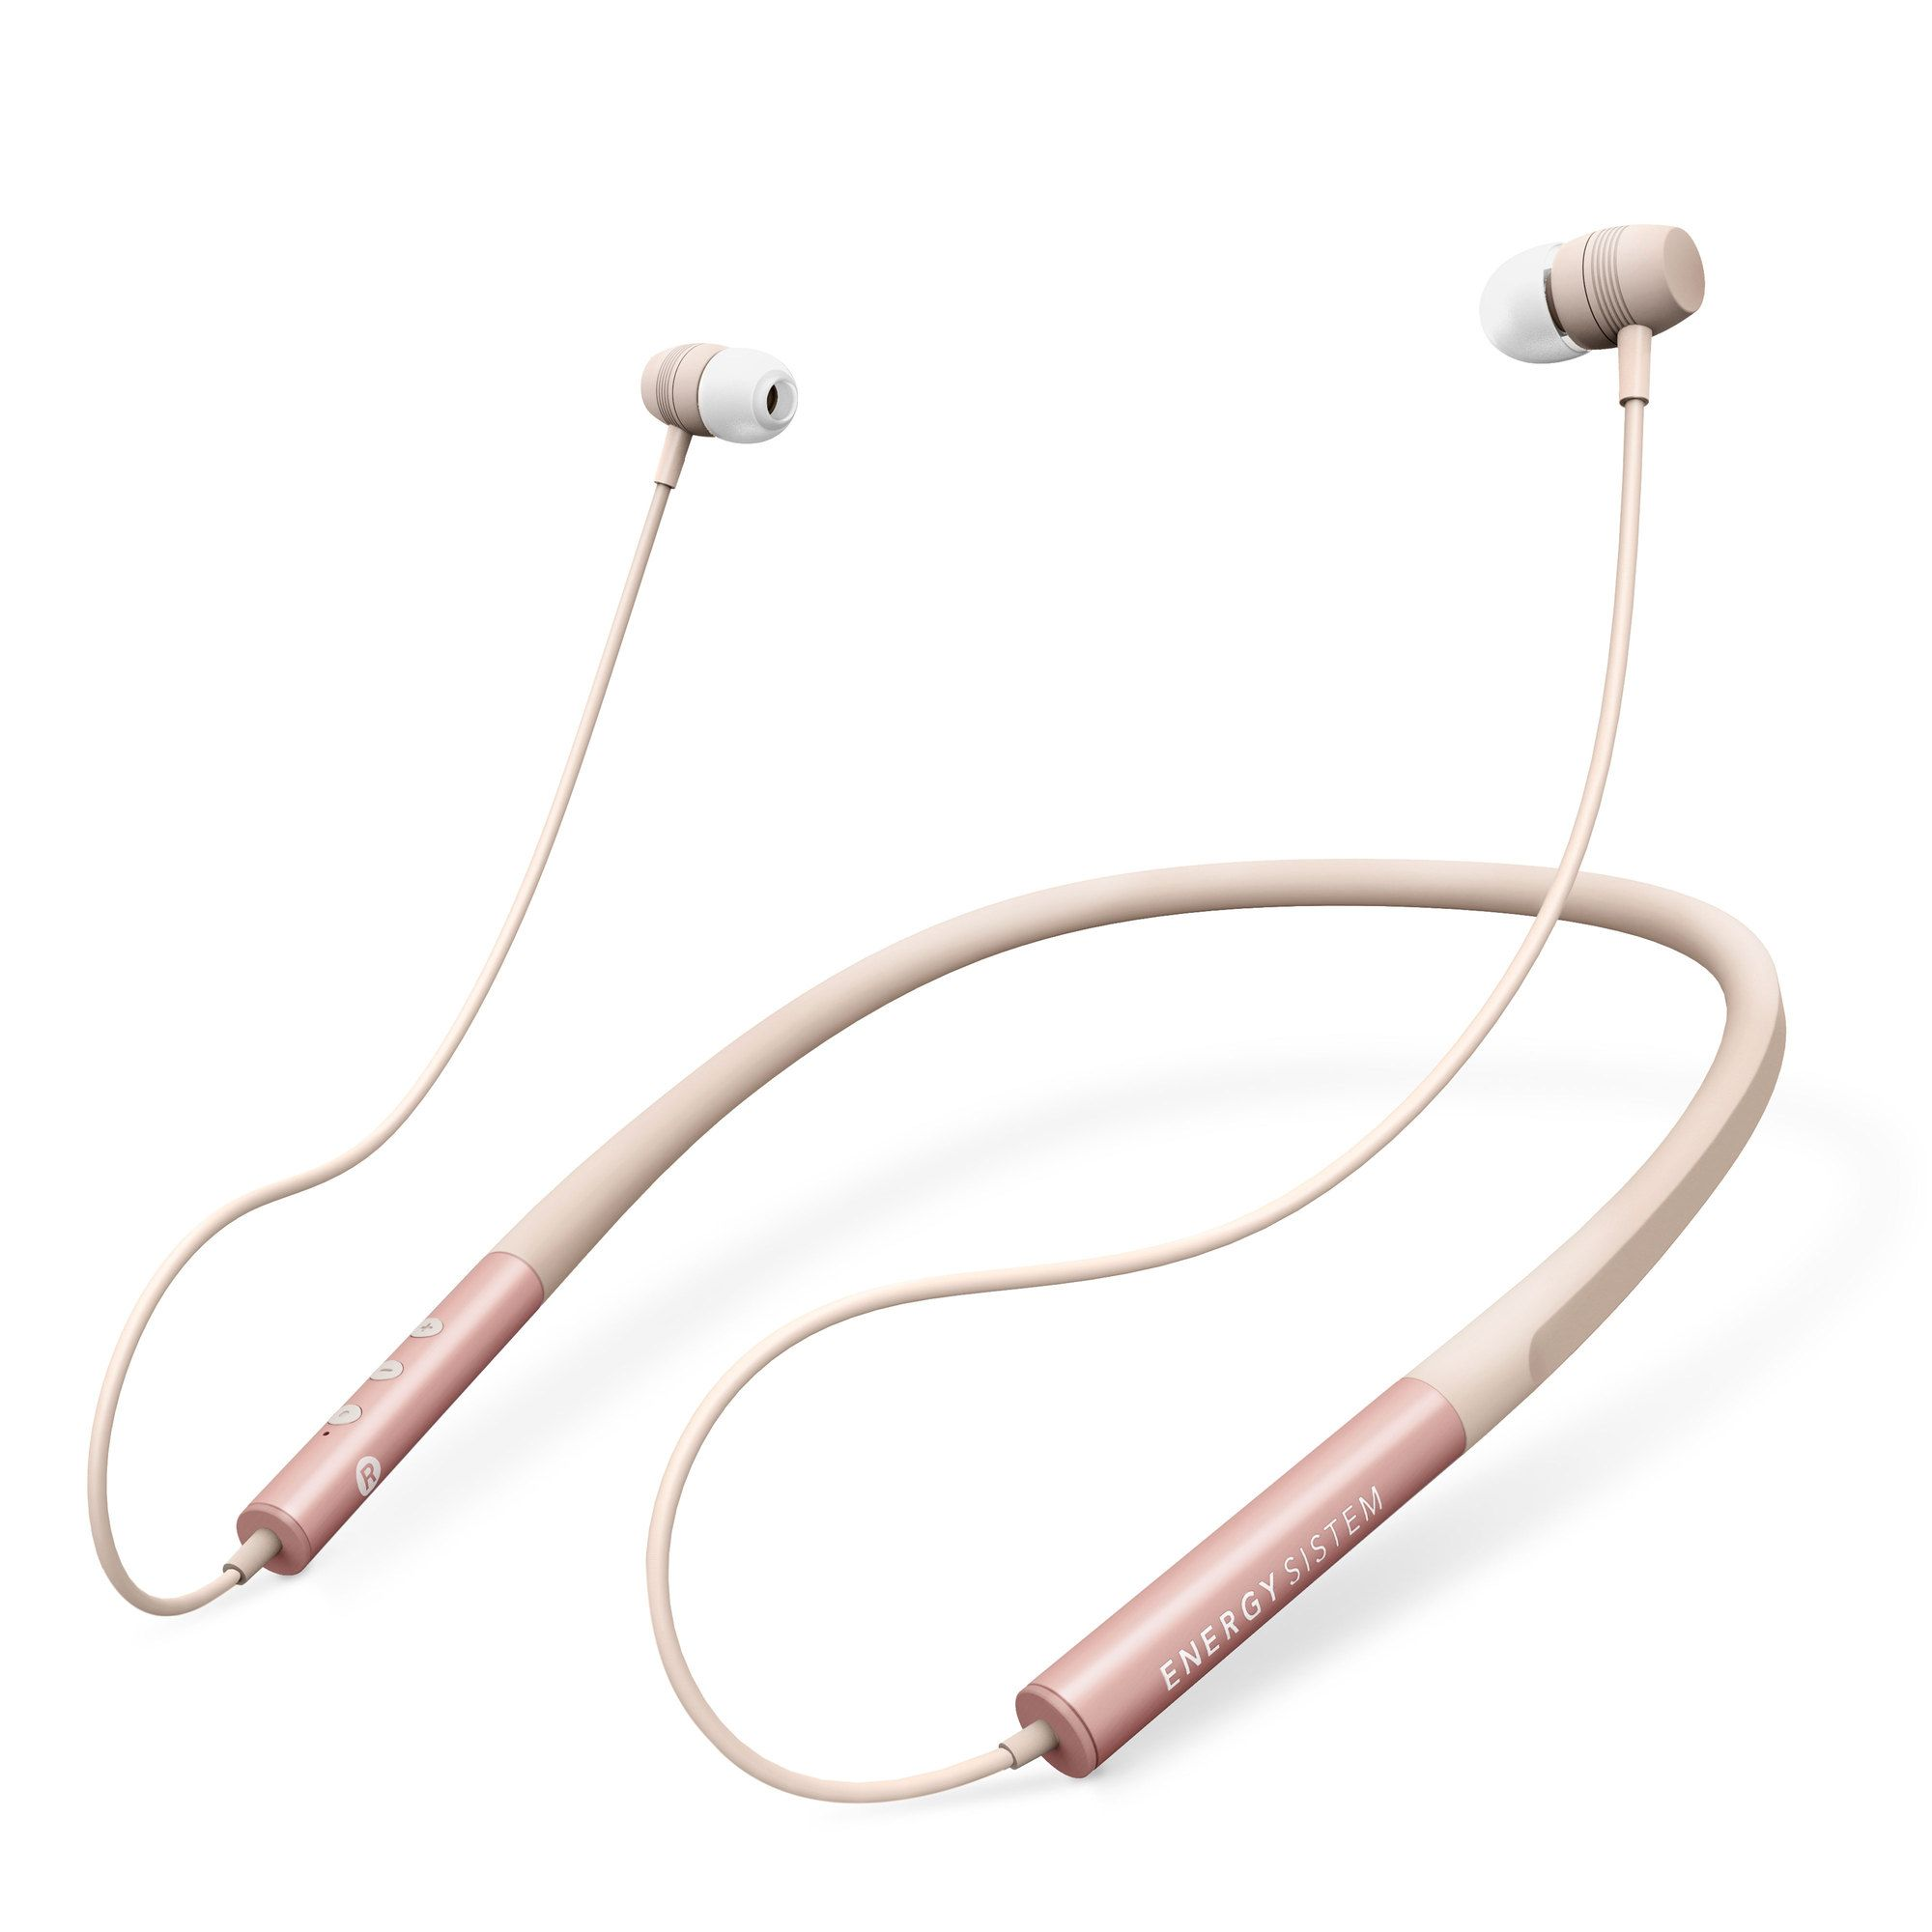 Earphones Neckband 3 Bluetooth Energy System Intrauditivos Rose Gold Banda Con Cierre Magnetico